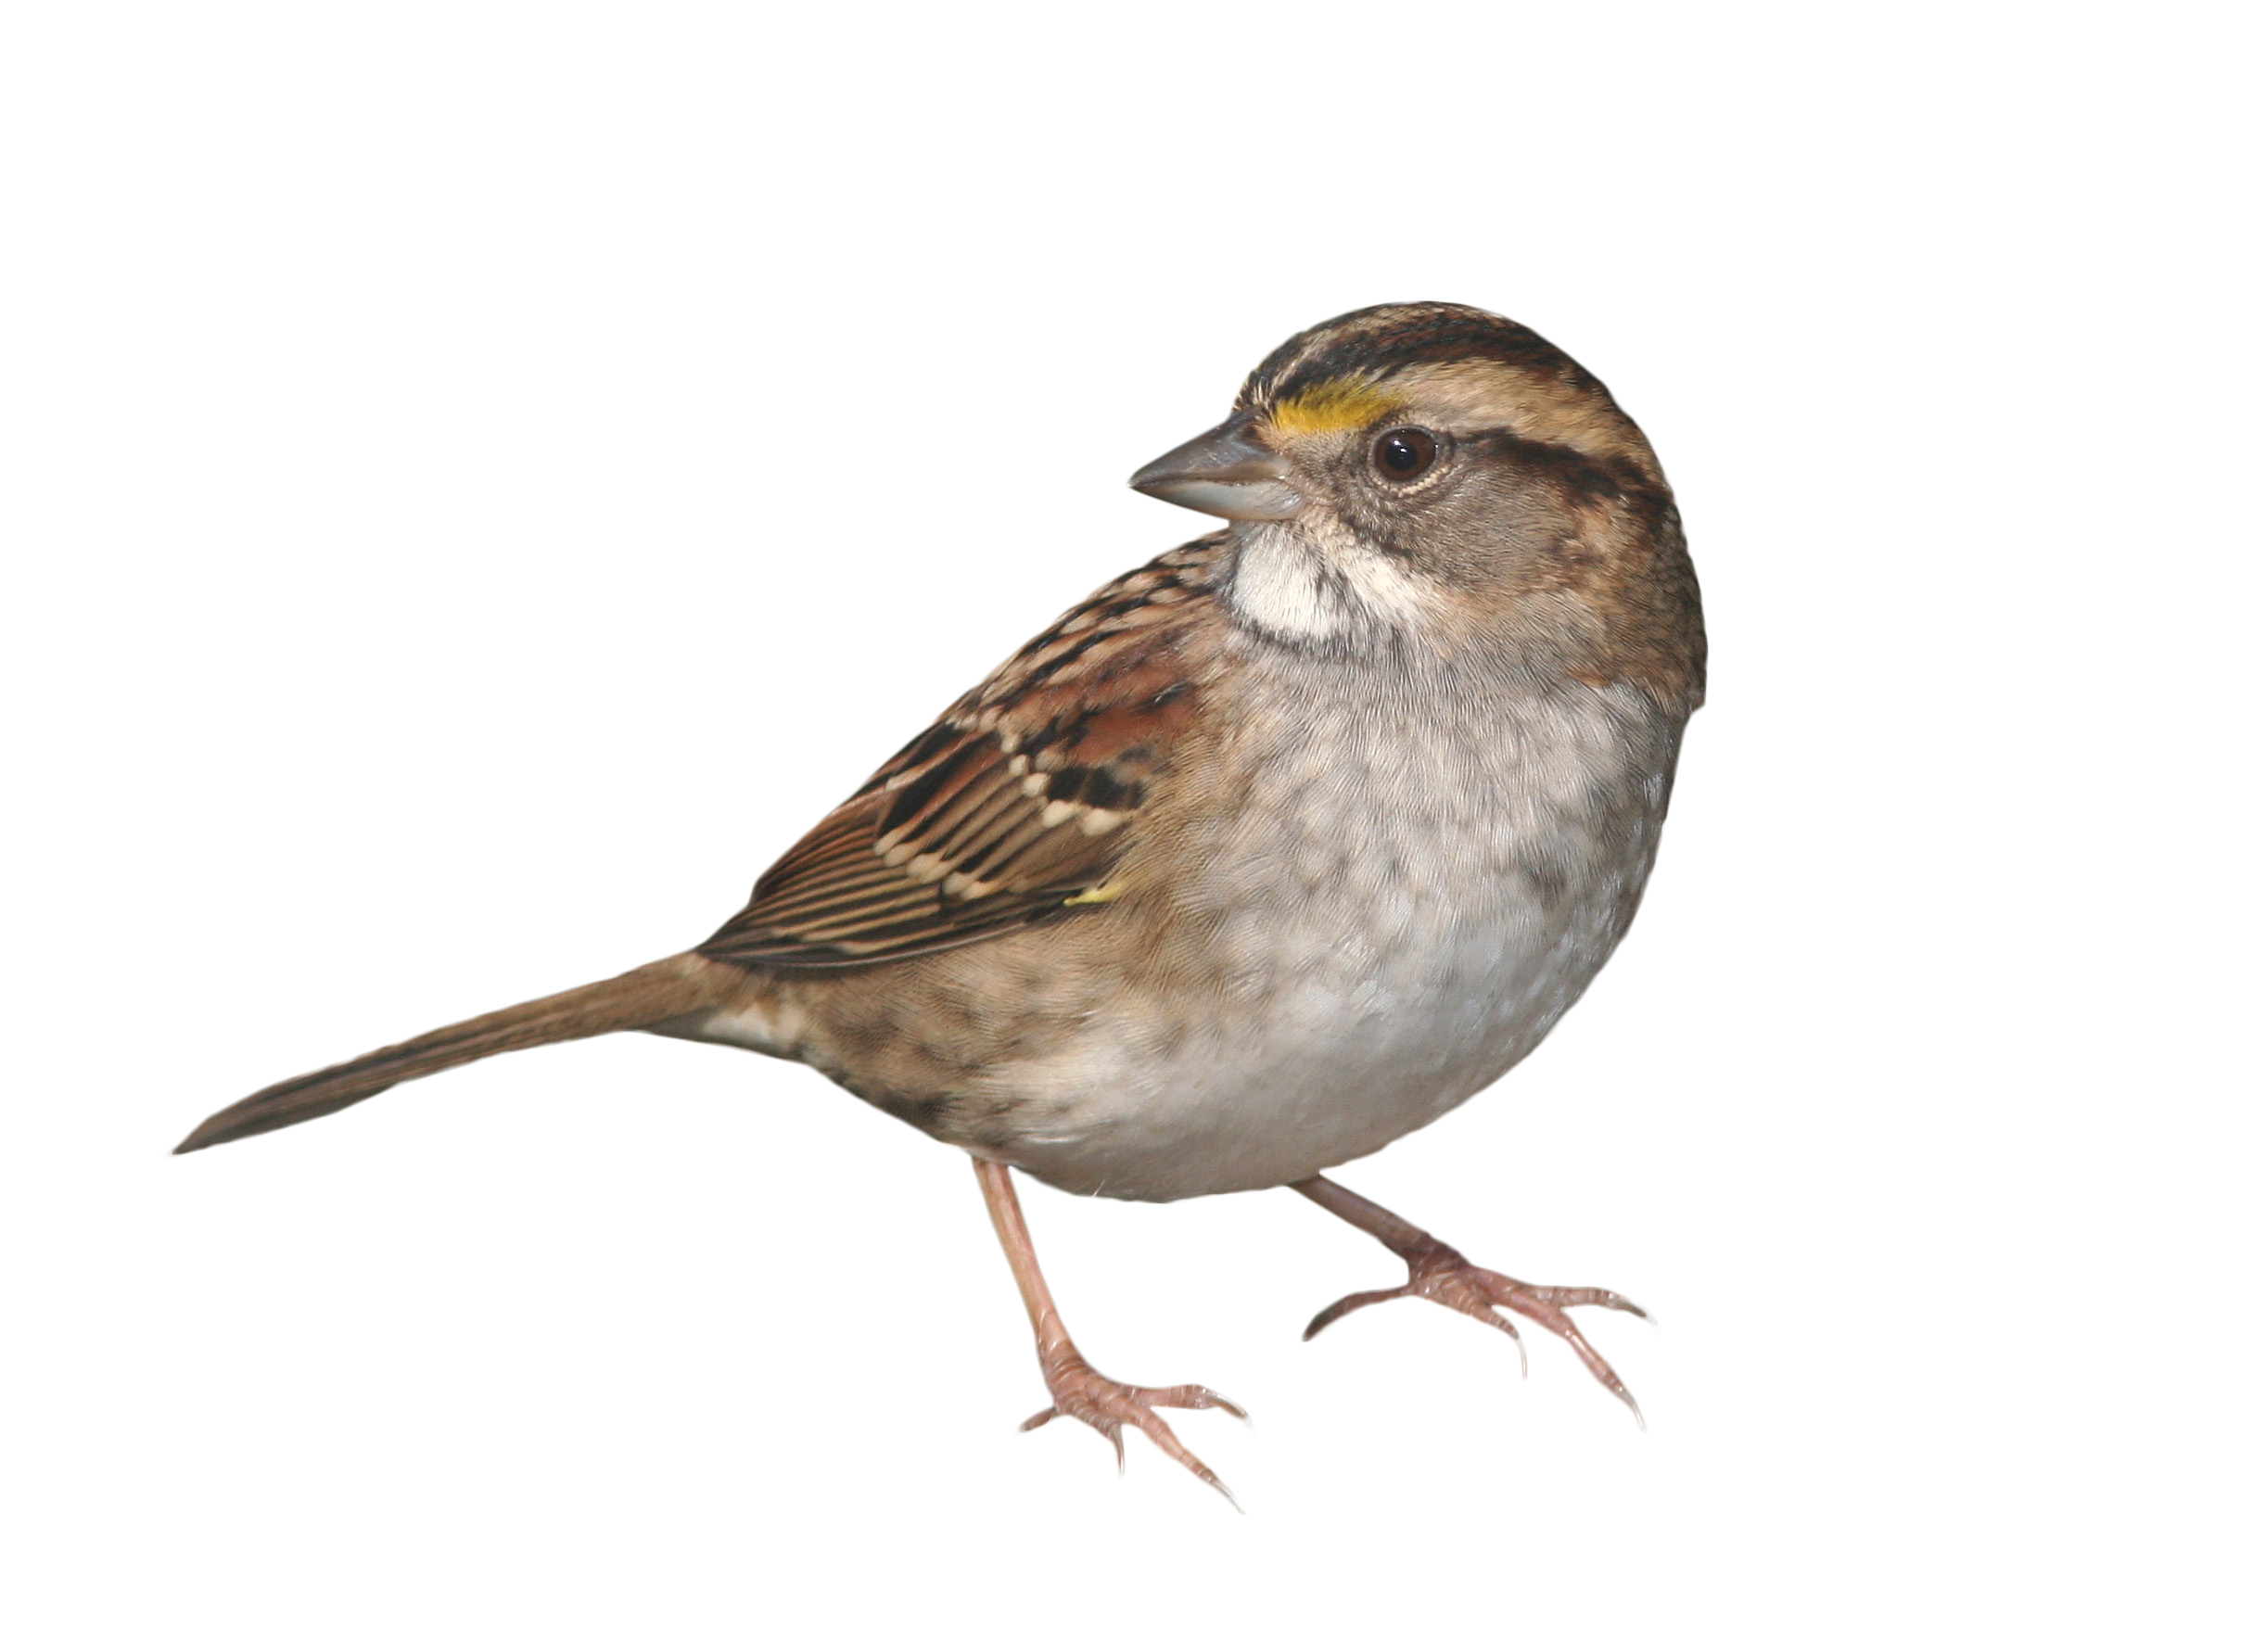 House sparrow clipart clip freeuse stock Sparrow Standing PNG Image - PurePNG | Free transparent CC0 PNG ... clip freeuse stock